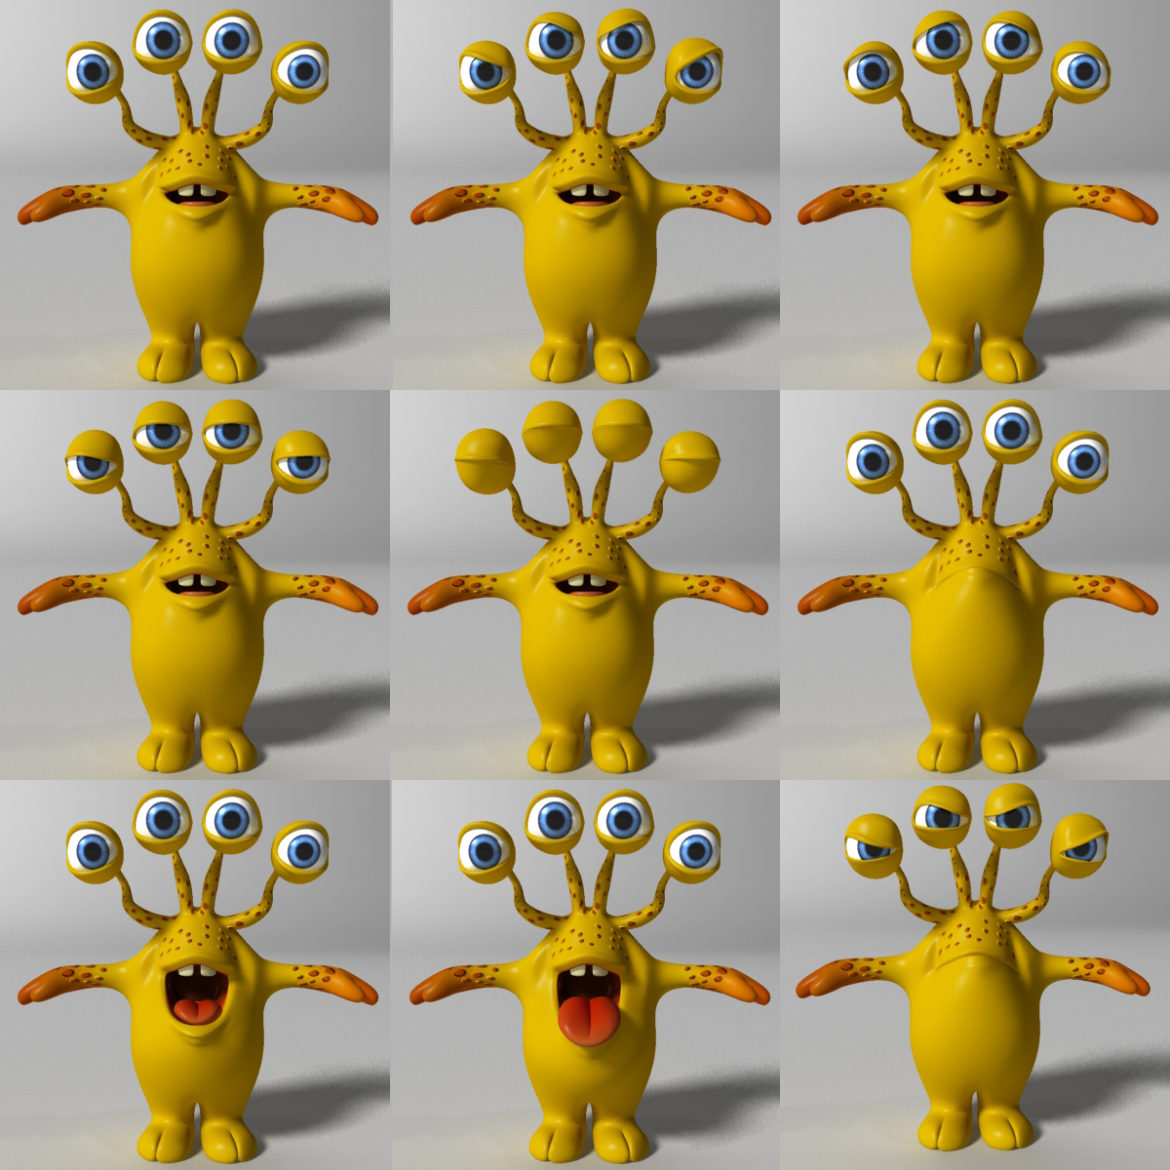 cartoon yellow moster rigged 3d model 3ds max fbx  obj 310799